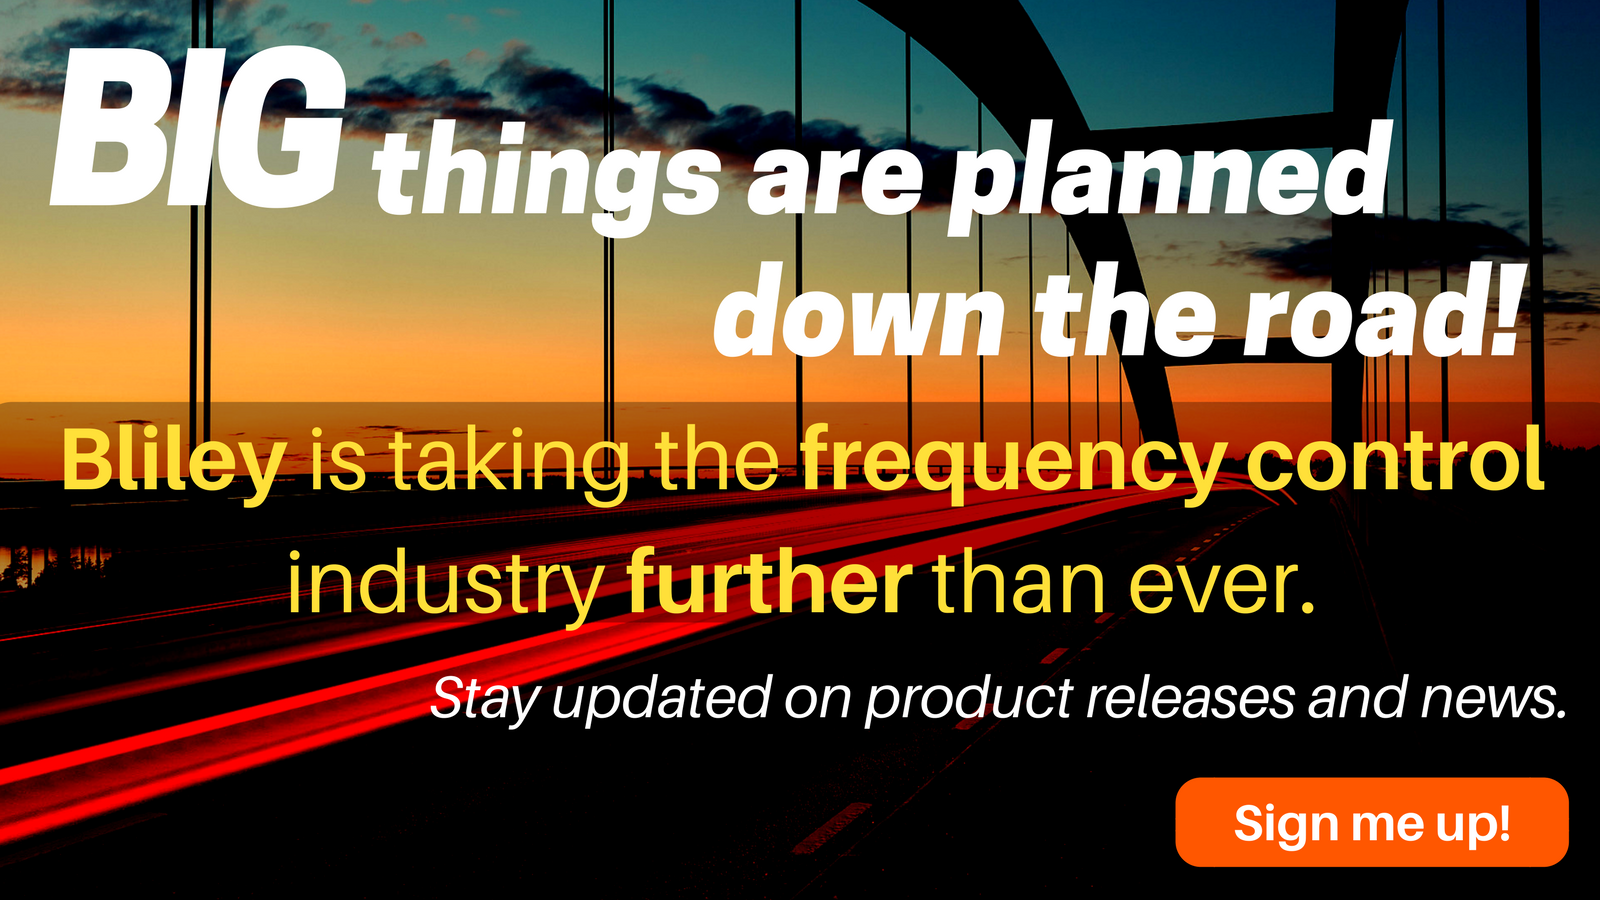 Stay updated about Bliley's product releases and news